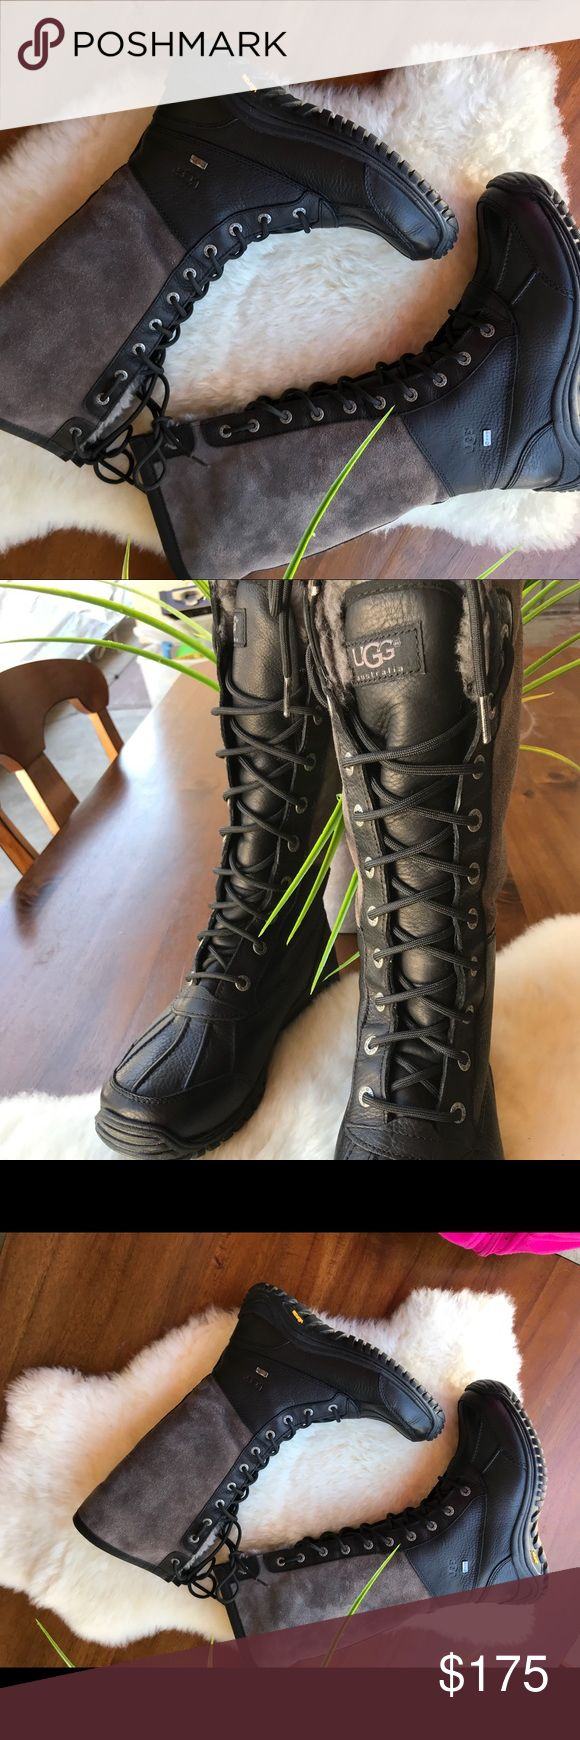 🔥🔥UGG Adirondack Tall Black/Gray Boots Sz 7.5🔥 UGG Adirondack Tall Black/Gray B Sz 7.5, waterproof and wind proof, the shaft height on these measures approximately 12 inches, they stand up to winter, sleet, rain, and freezing temperatures, true to size, Fully lined SKU # 8392631. MSRP $294.95 UGG Shoes Ankle Boots & Booties